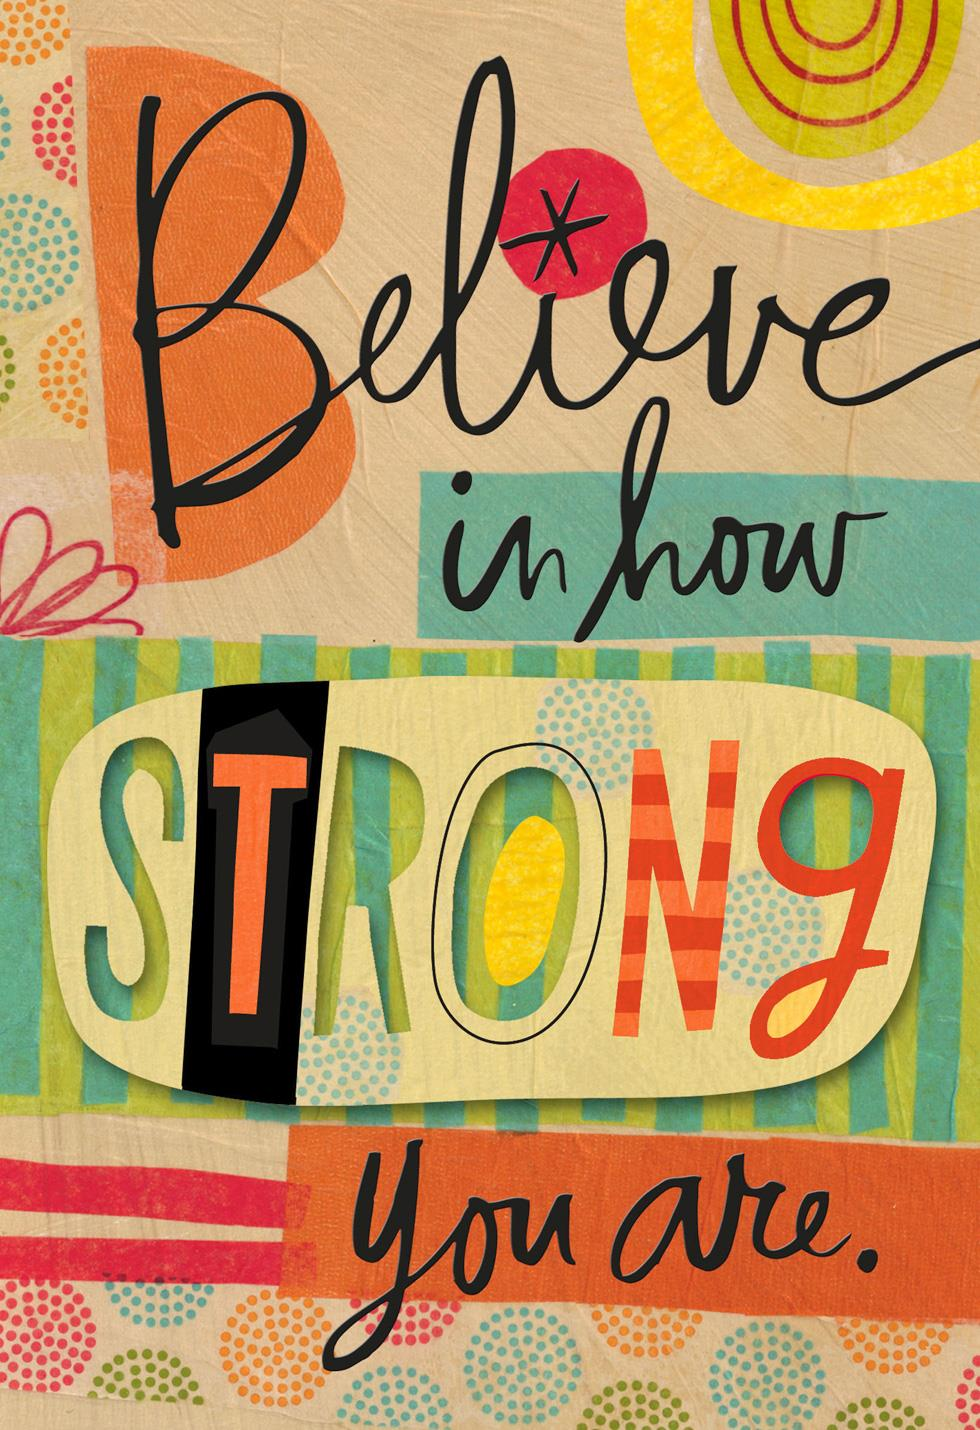 i believe in you collage encouragement card